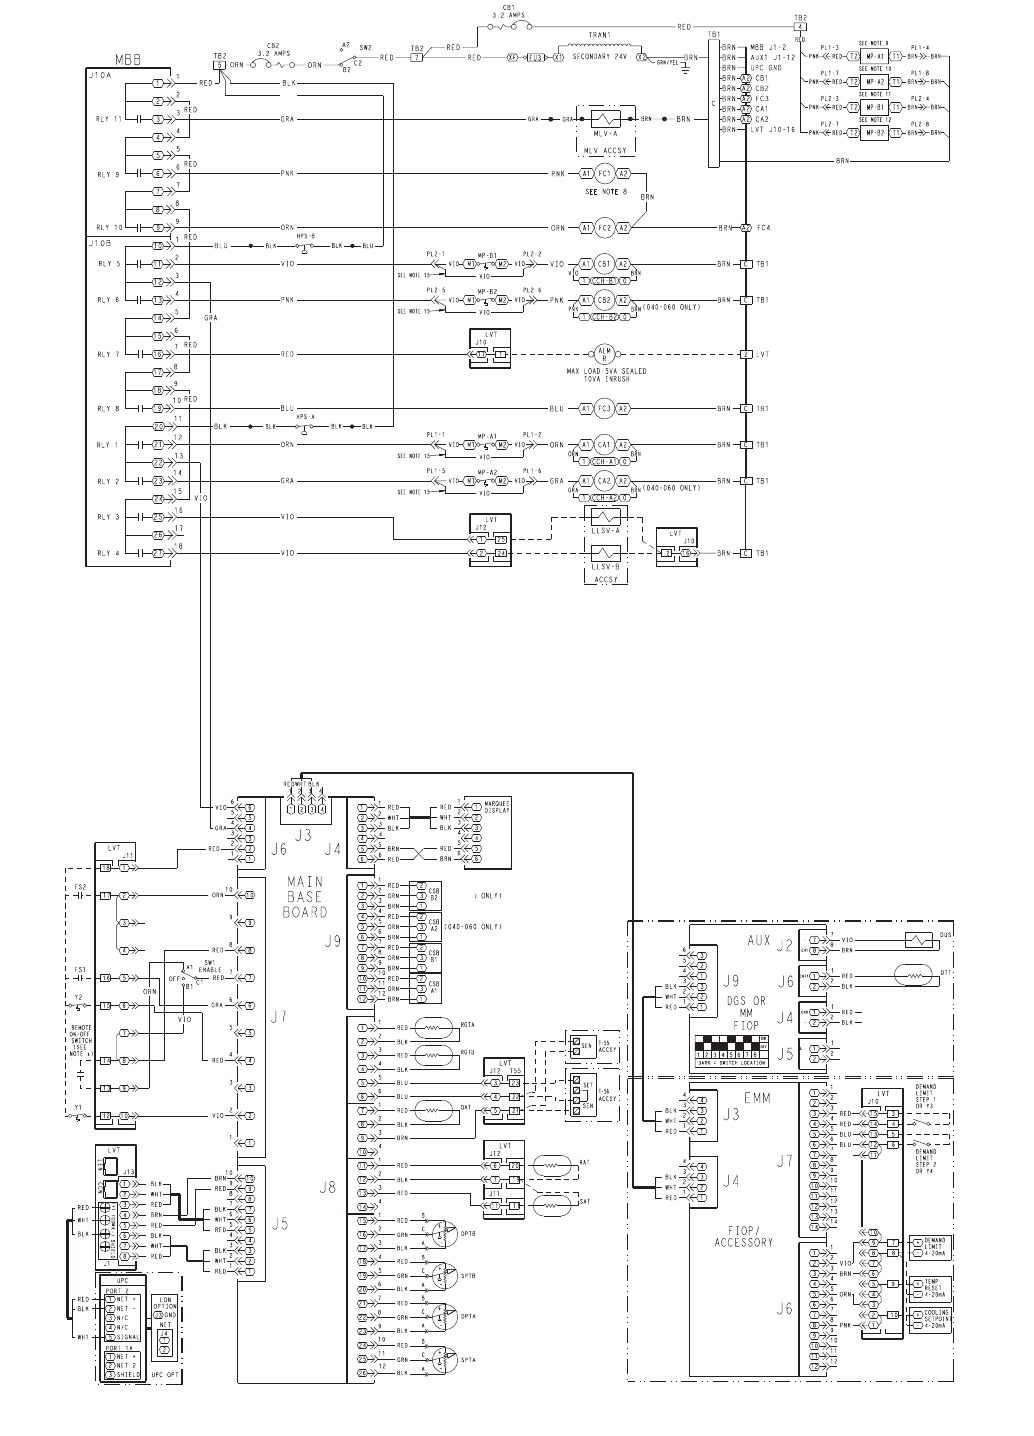 asset b carrier 38apd025 100 38ap 1t reprint 210 user manual to the affddf2a